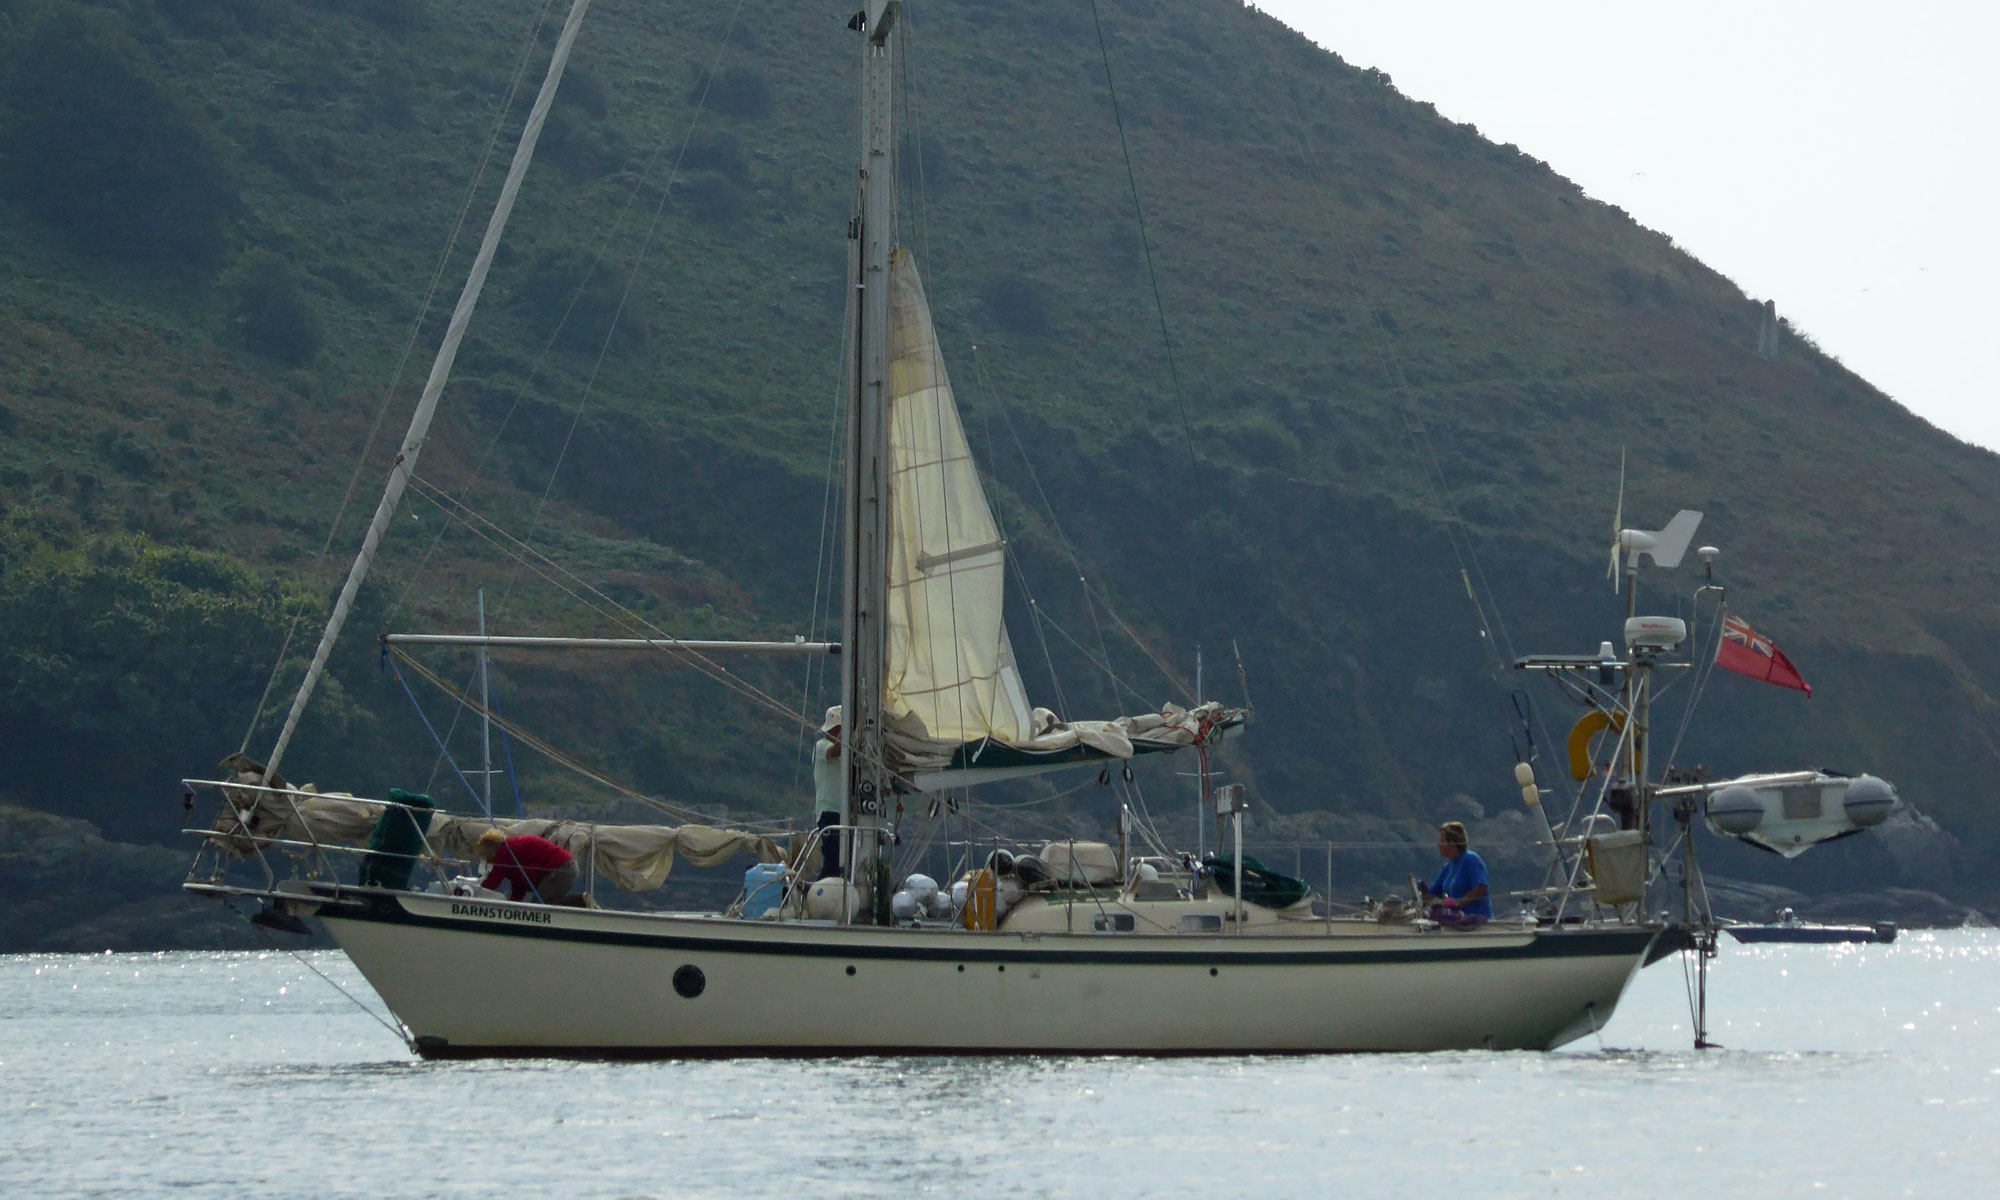 A Tradewind 35 Sailboat